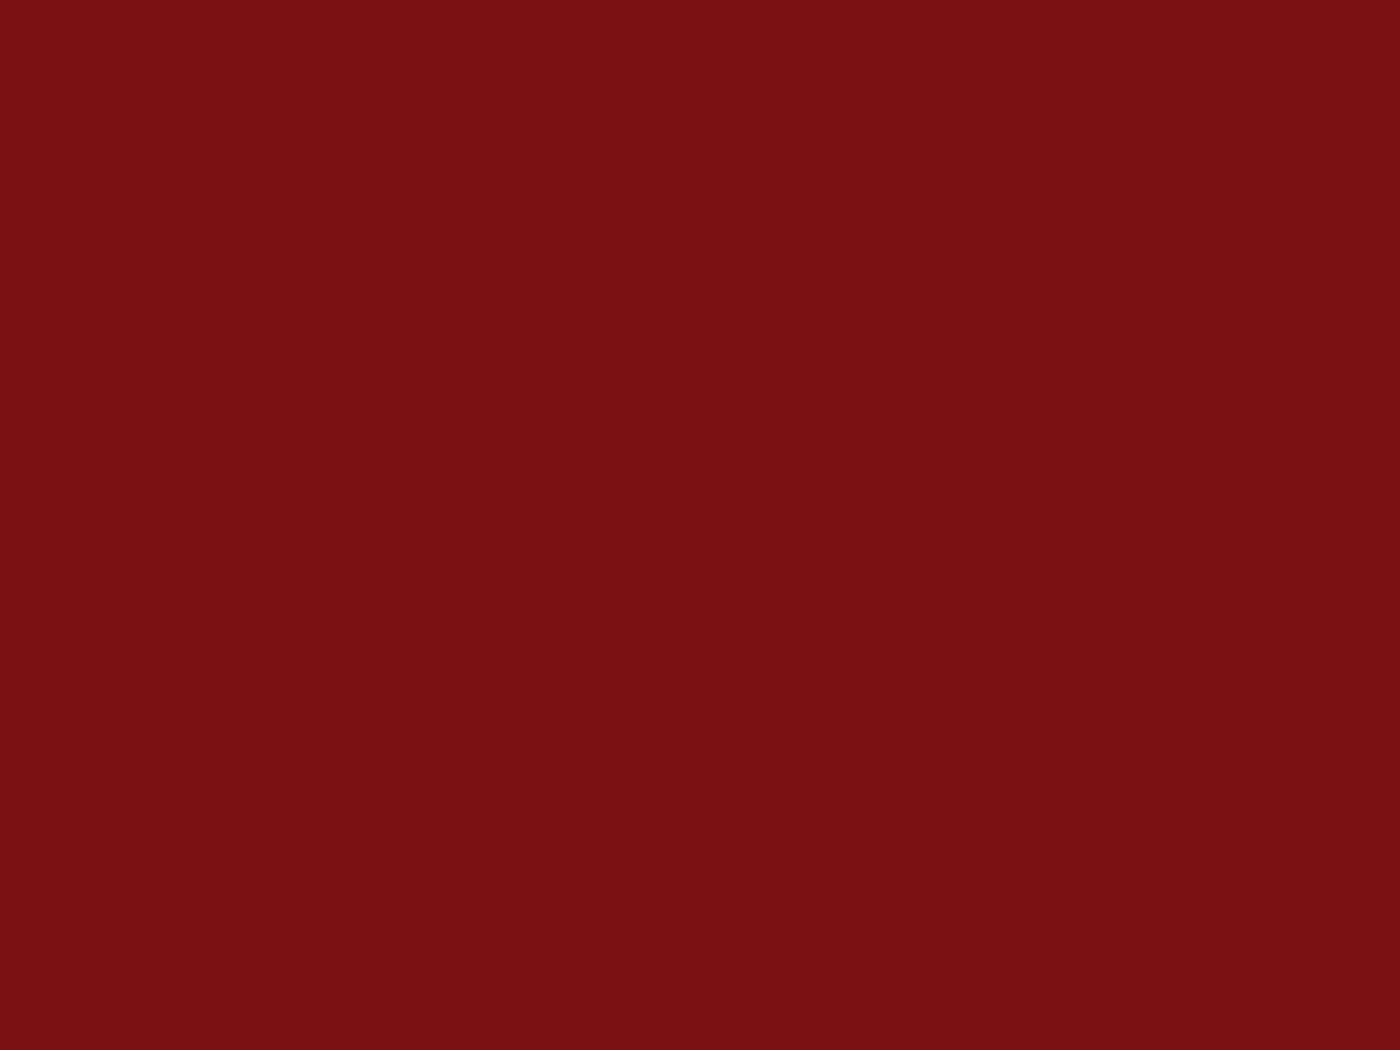 1400x1050 UP Maroon Solid Color Background